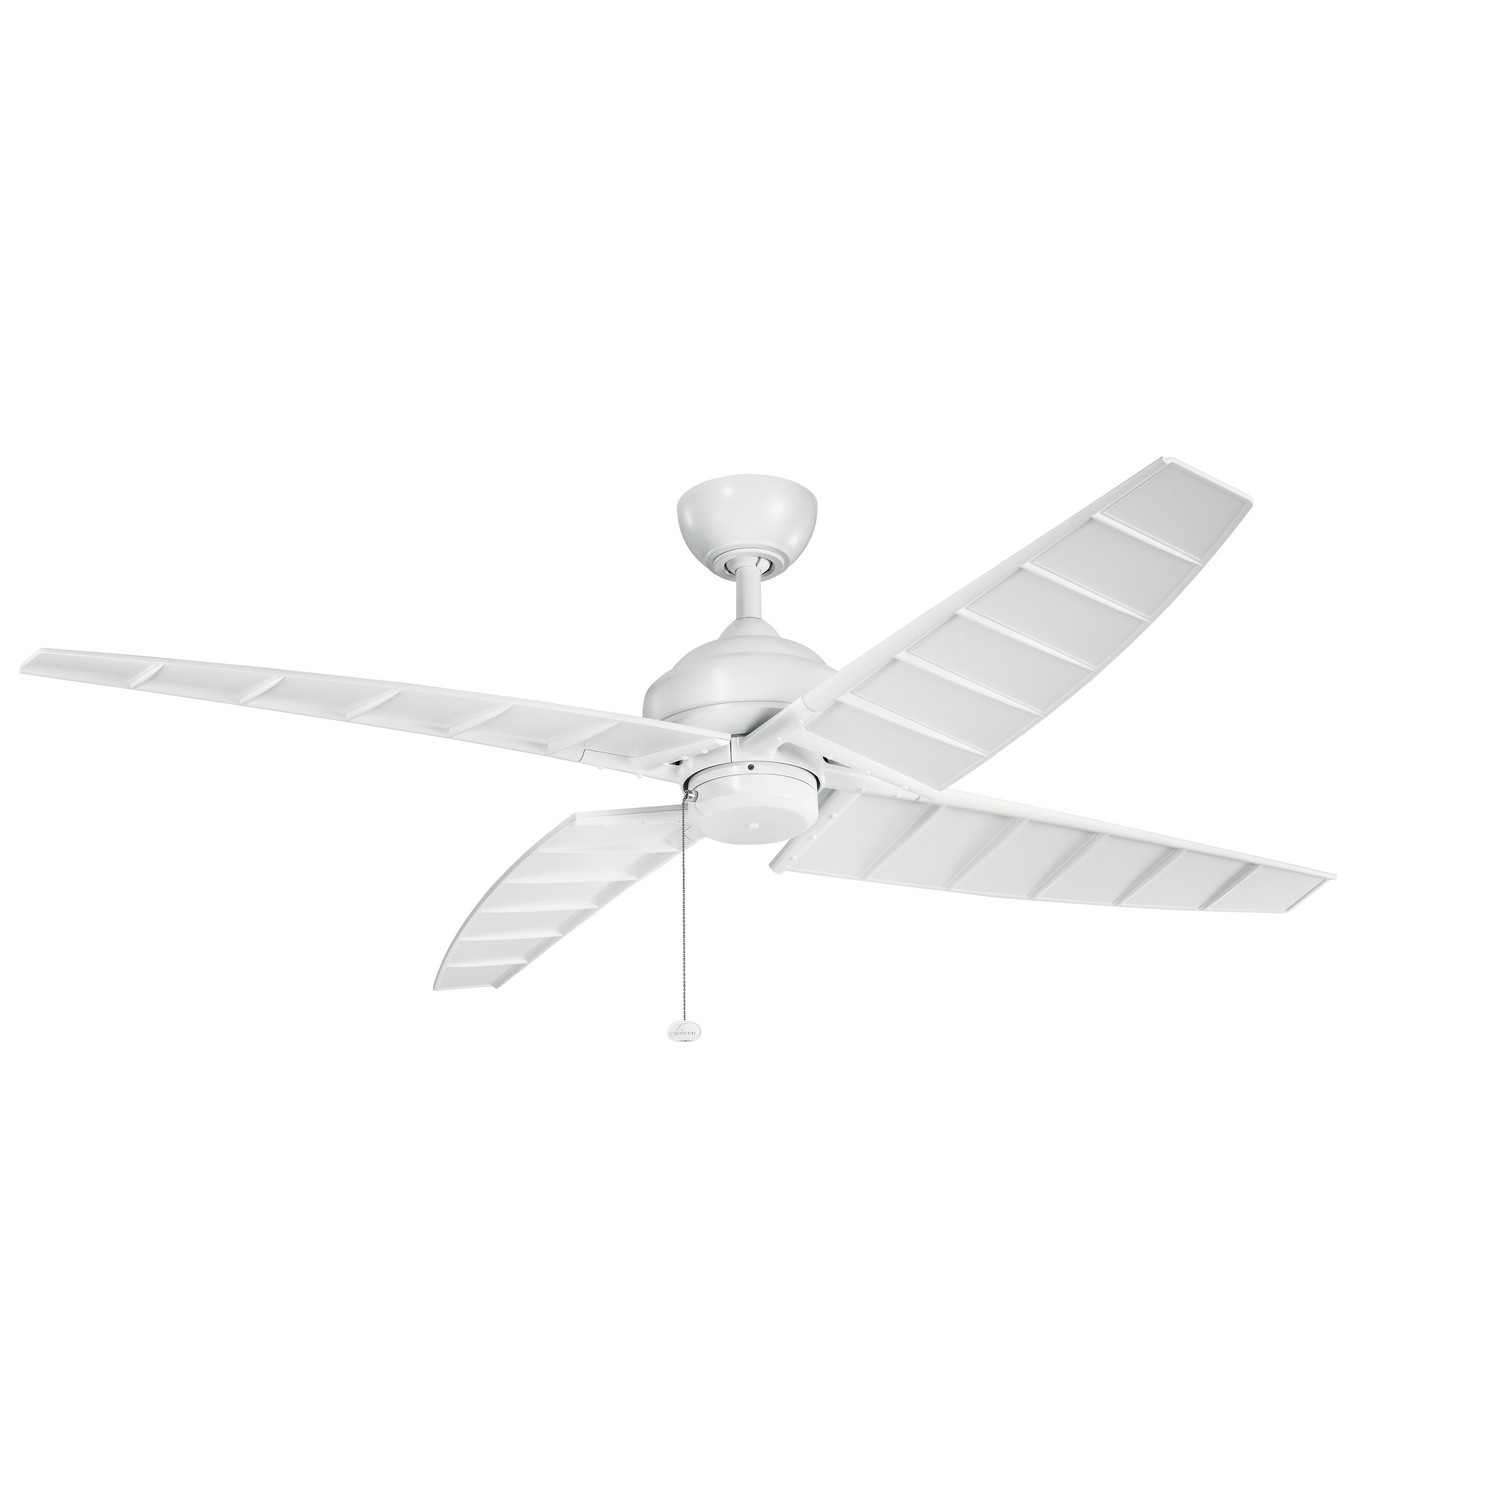 60 inchCeiling Fan from the Surrey collection by Kichler 300250MWH